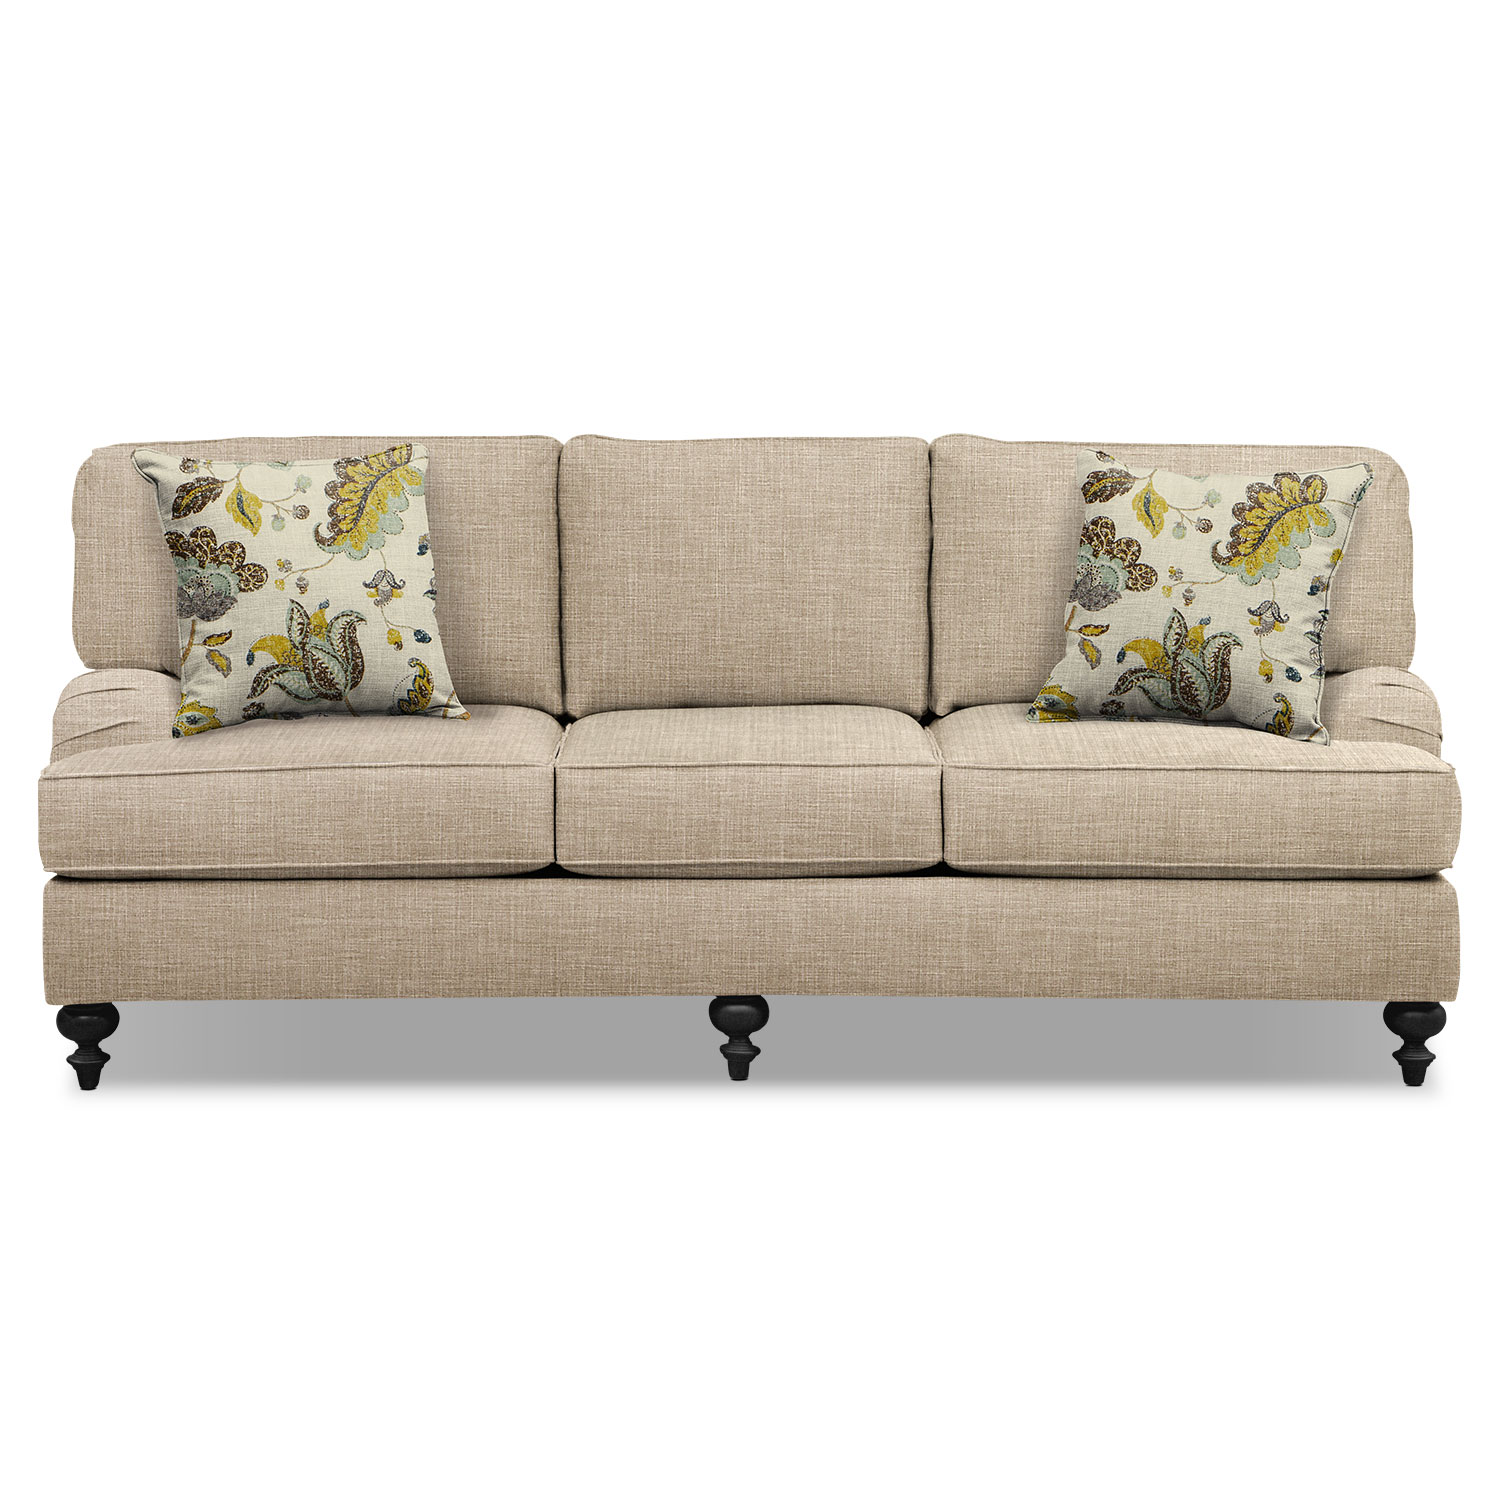 Avery taupe 86quot sofa and 62quot sofa set value city furniture for 86 sectional sofa